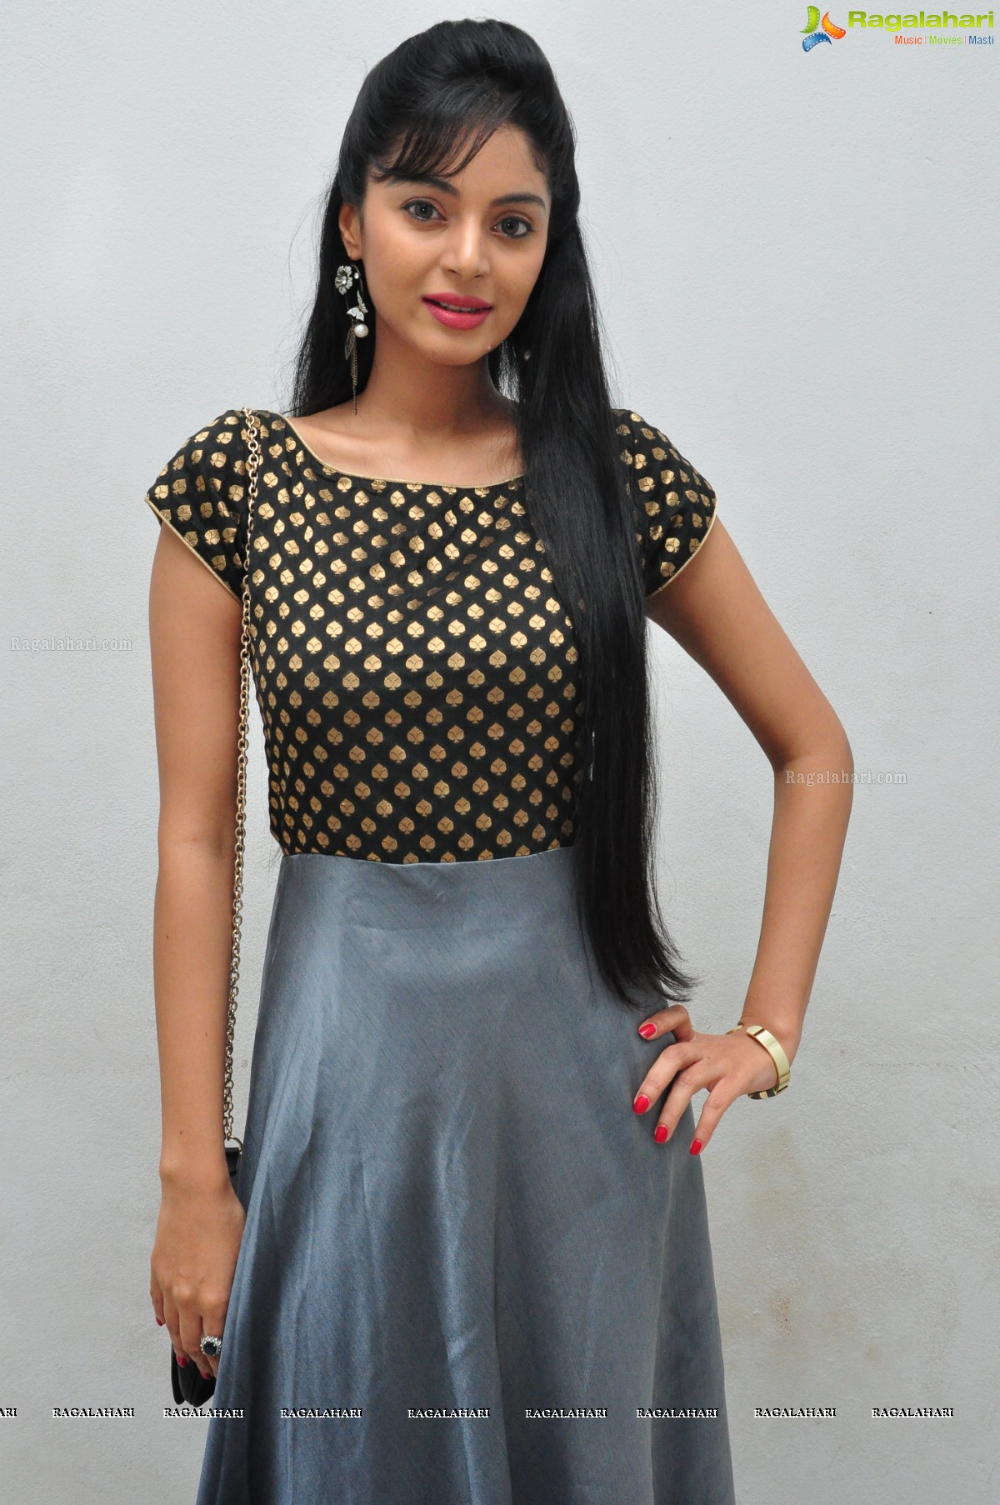 Sanam Shetty Image 11   Telugu Actress Posters,Images, Pics, Pictures, Photoshoot, Wallpapers